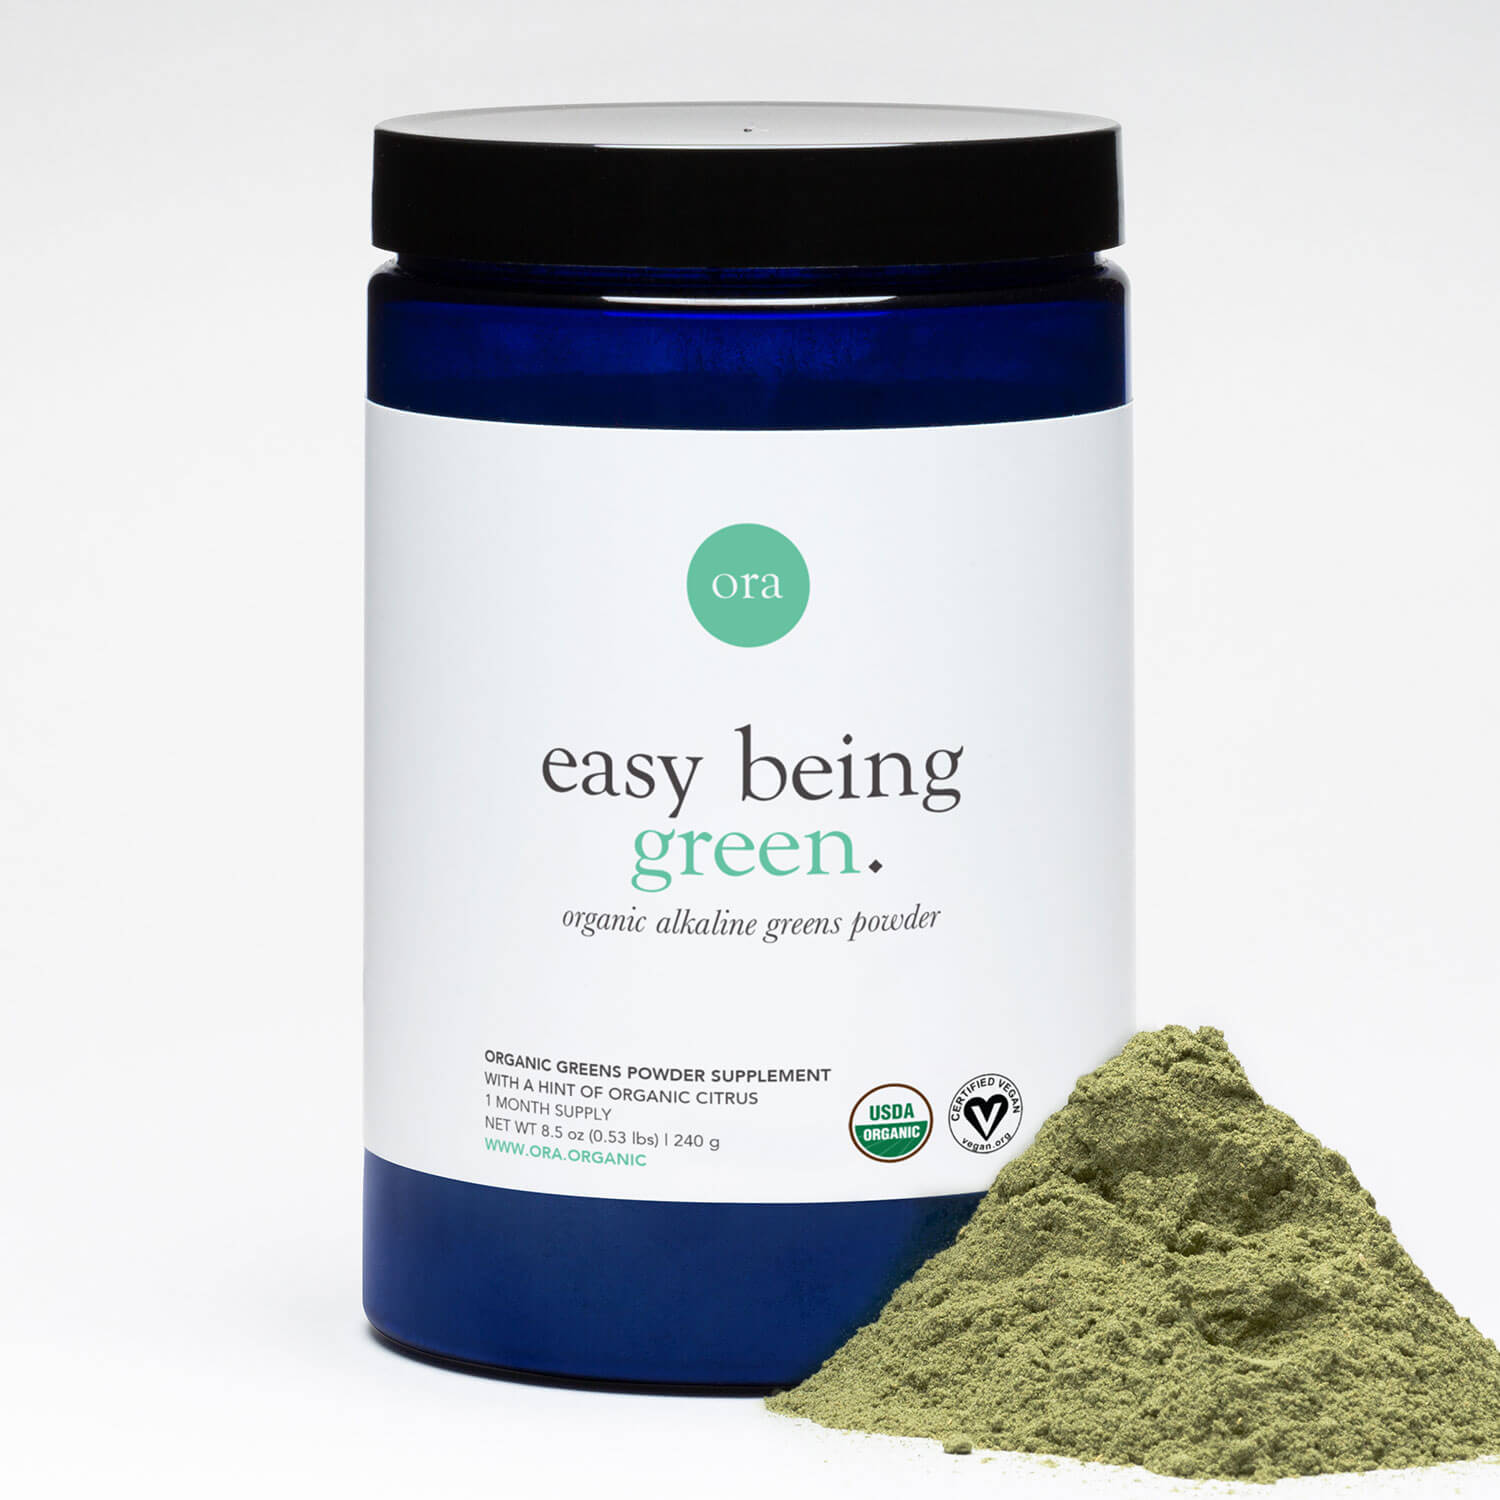 Organic Greens Powder feature-image featured-image